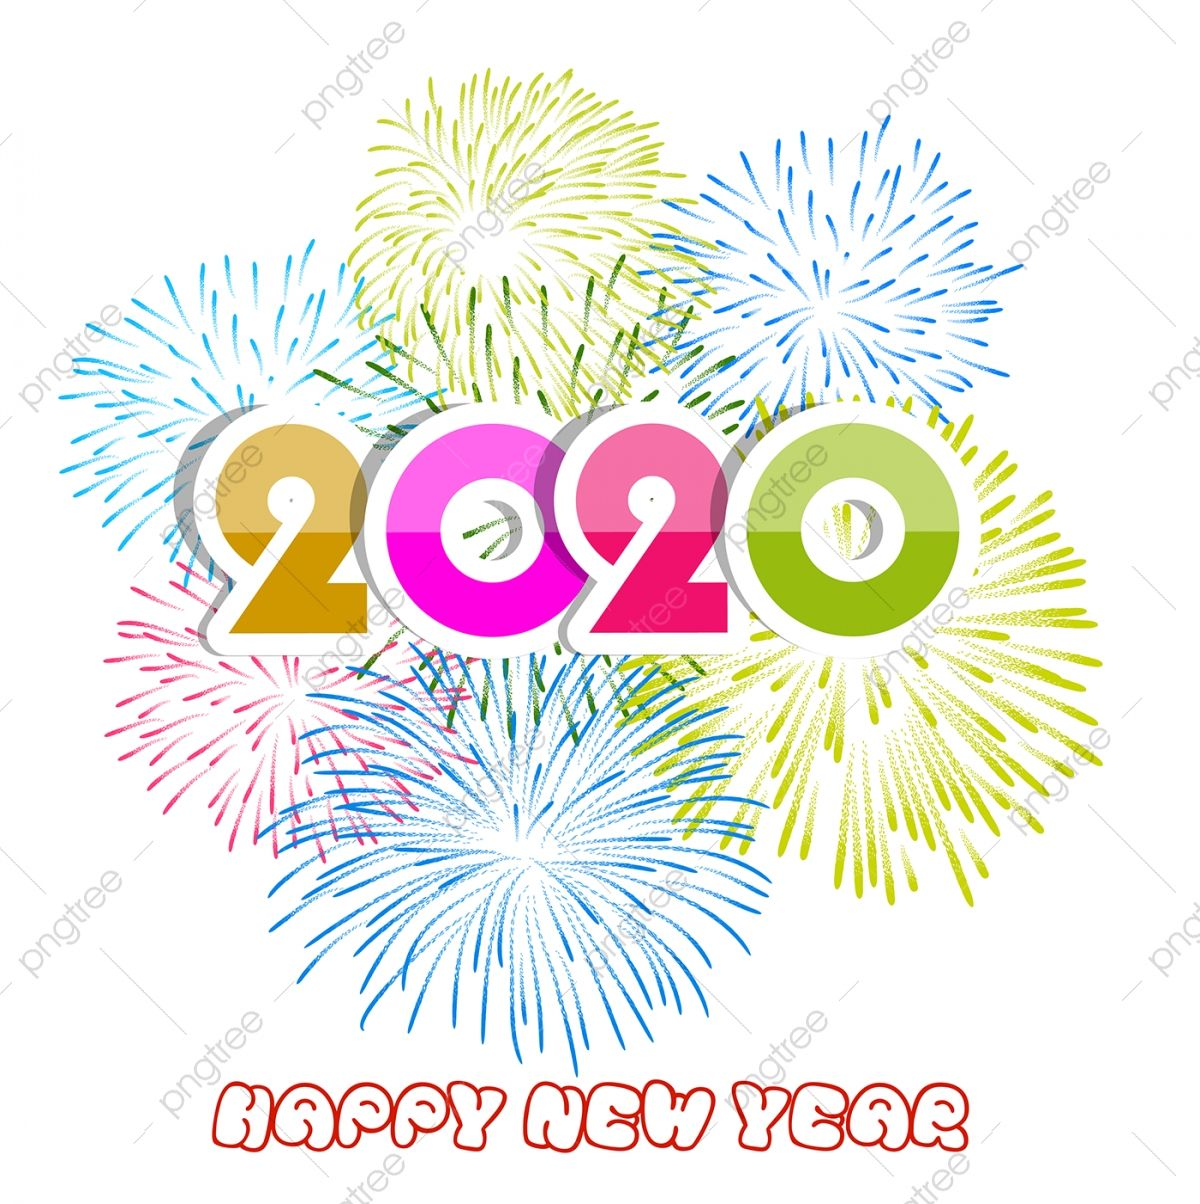 Happy New Year 2020 Background With Fireworks 2020 Abstract Celebrate Png And Vector With Transparent Backg In 2021 Happy New Year Text Happy New Year 2020 Clip Art